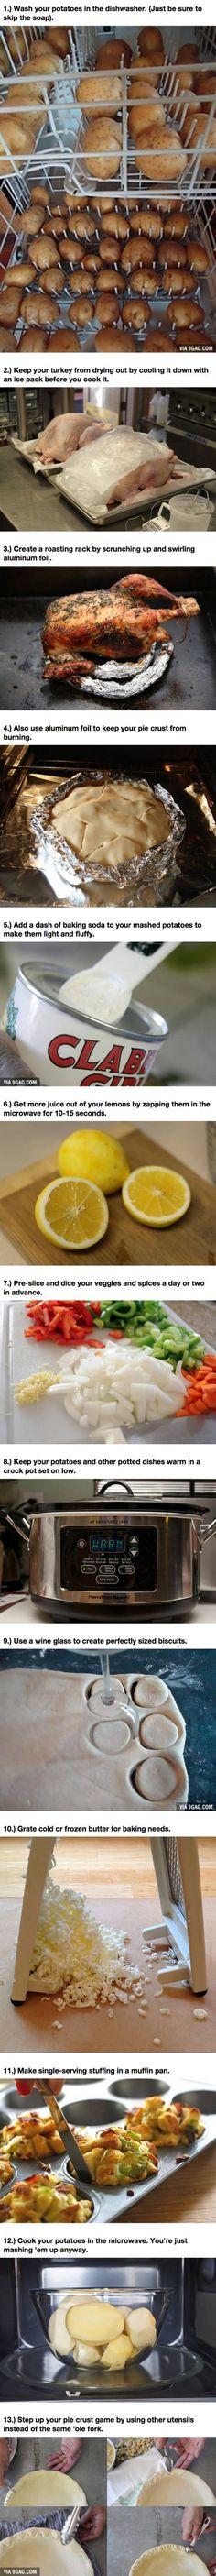 13 Cooking Hacks To Make Your Thanksgiving Dinner Delicious And Easy